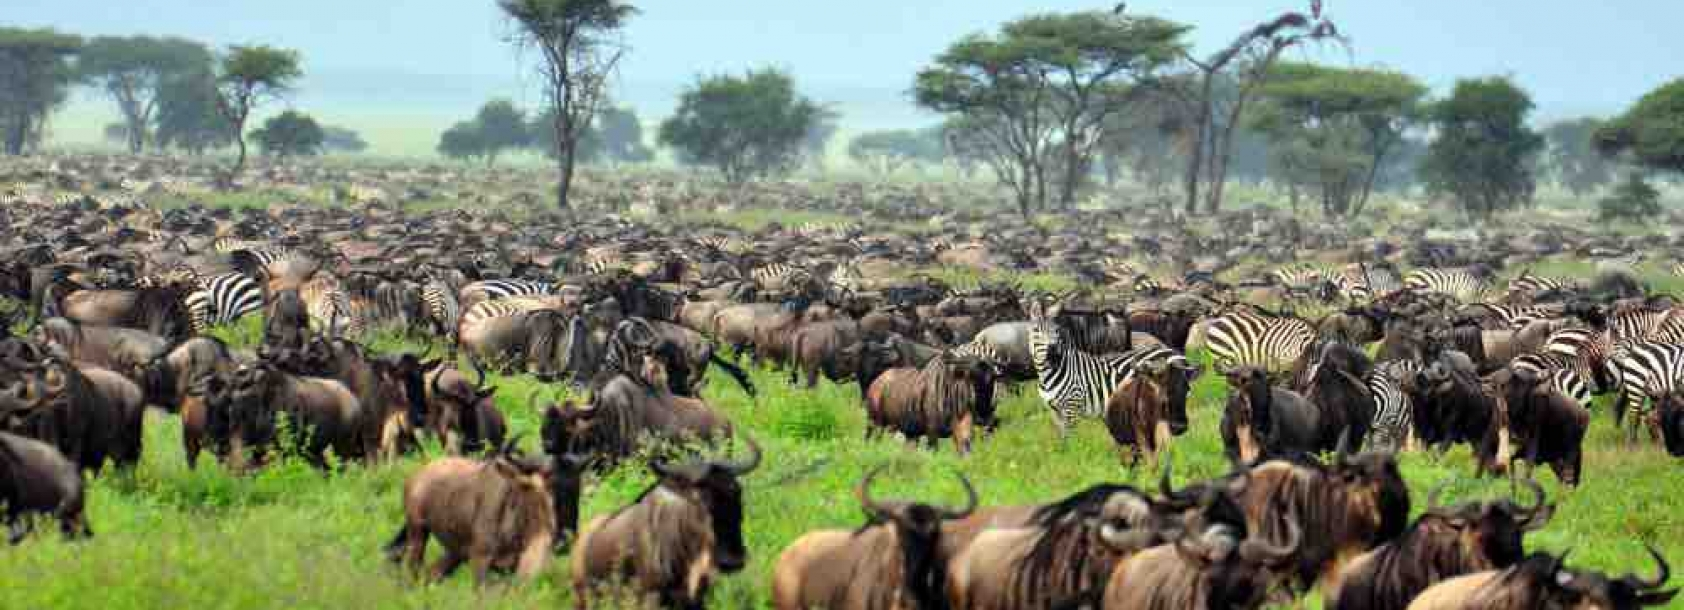 Tanzania_Serengeti Great migration